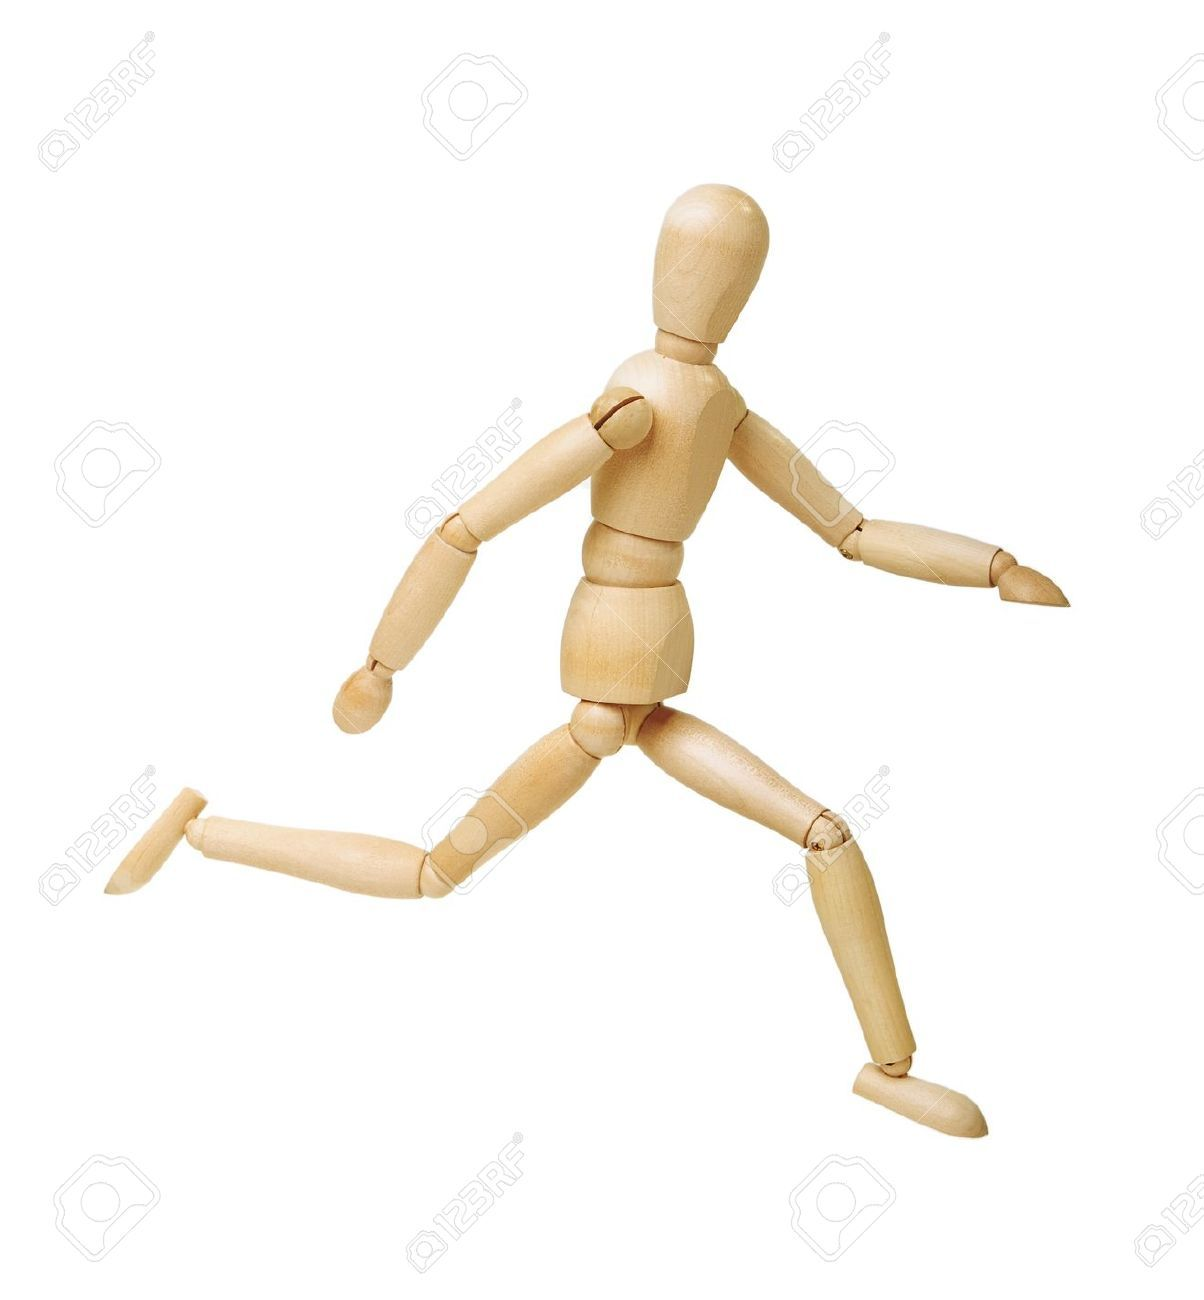 wooden mannequin poses google